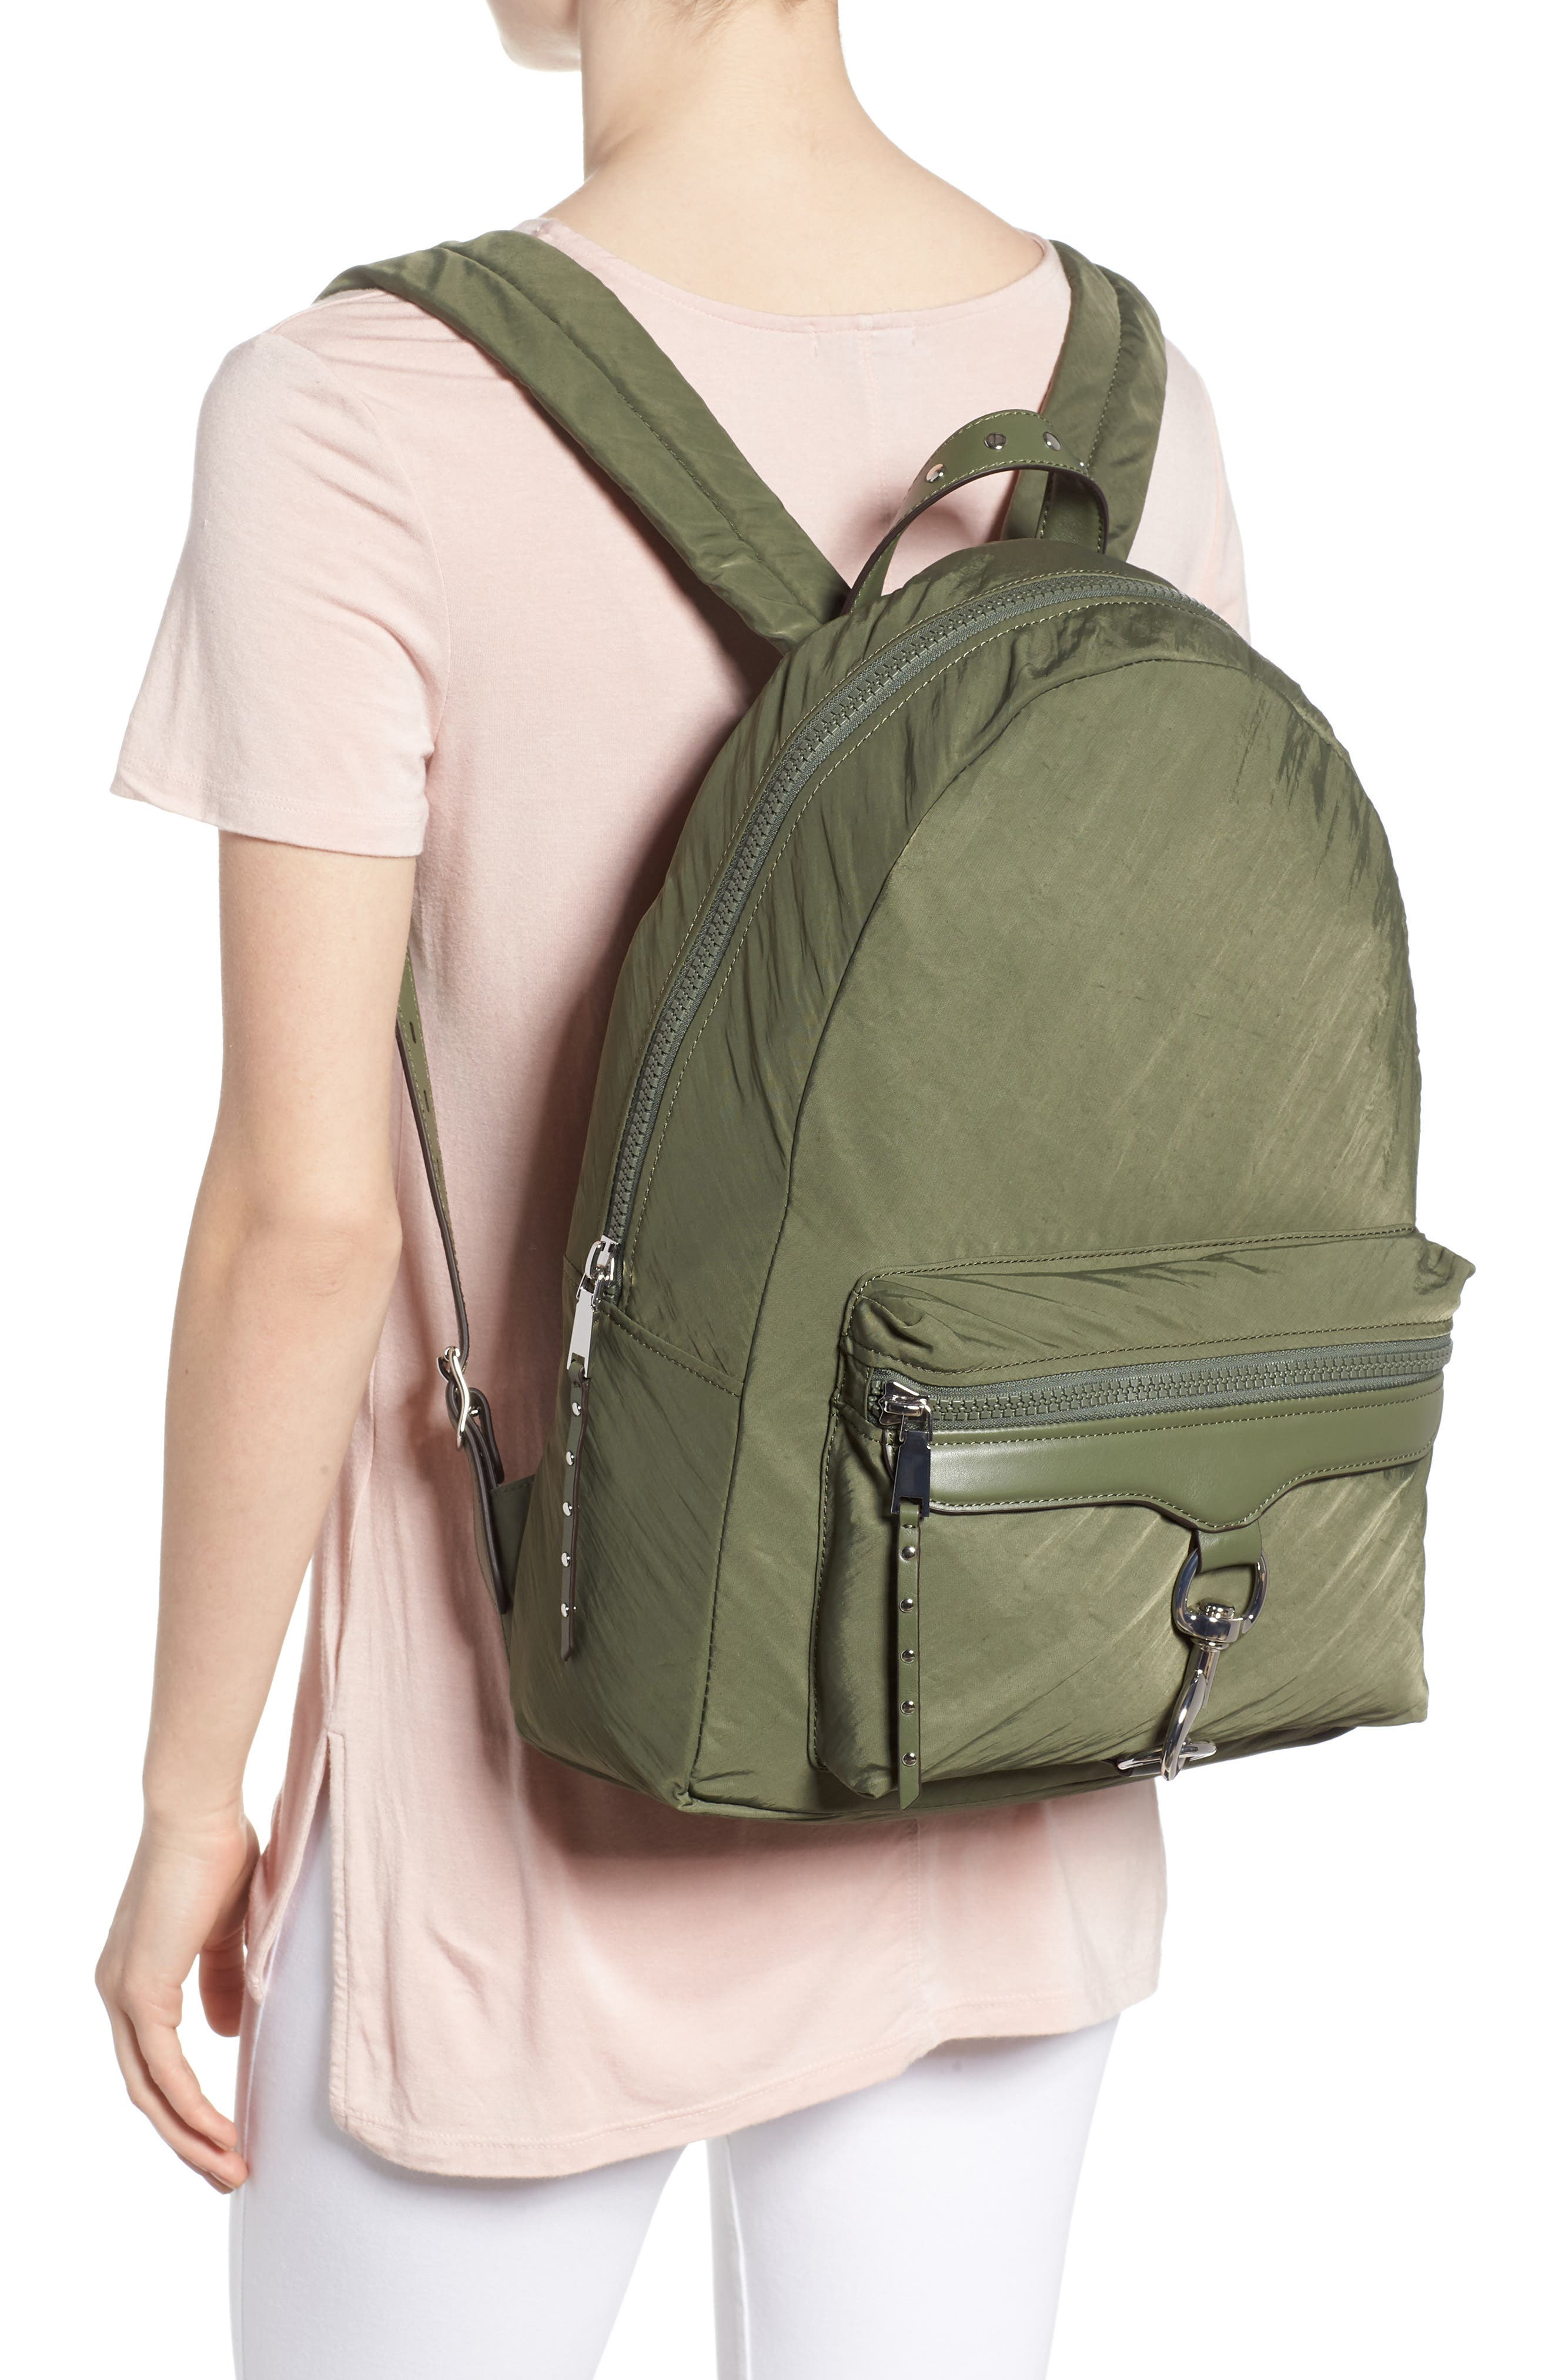 REBECCA MINKOFF, Always On MAB Backpack, Alternate thumbnail 2, color, OLIVE